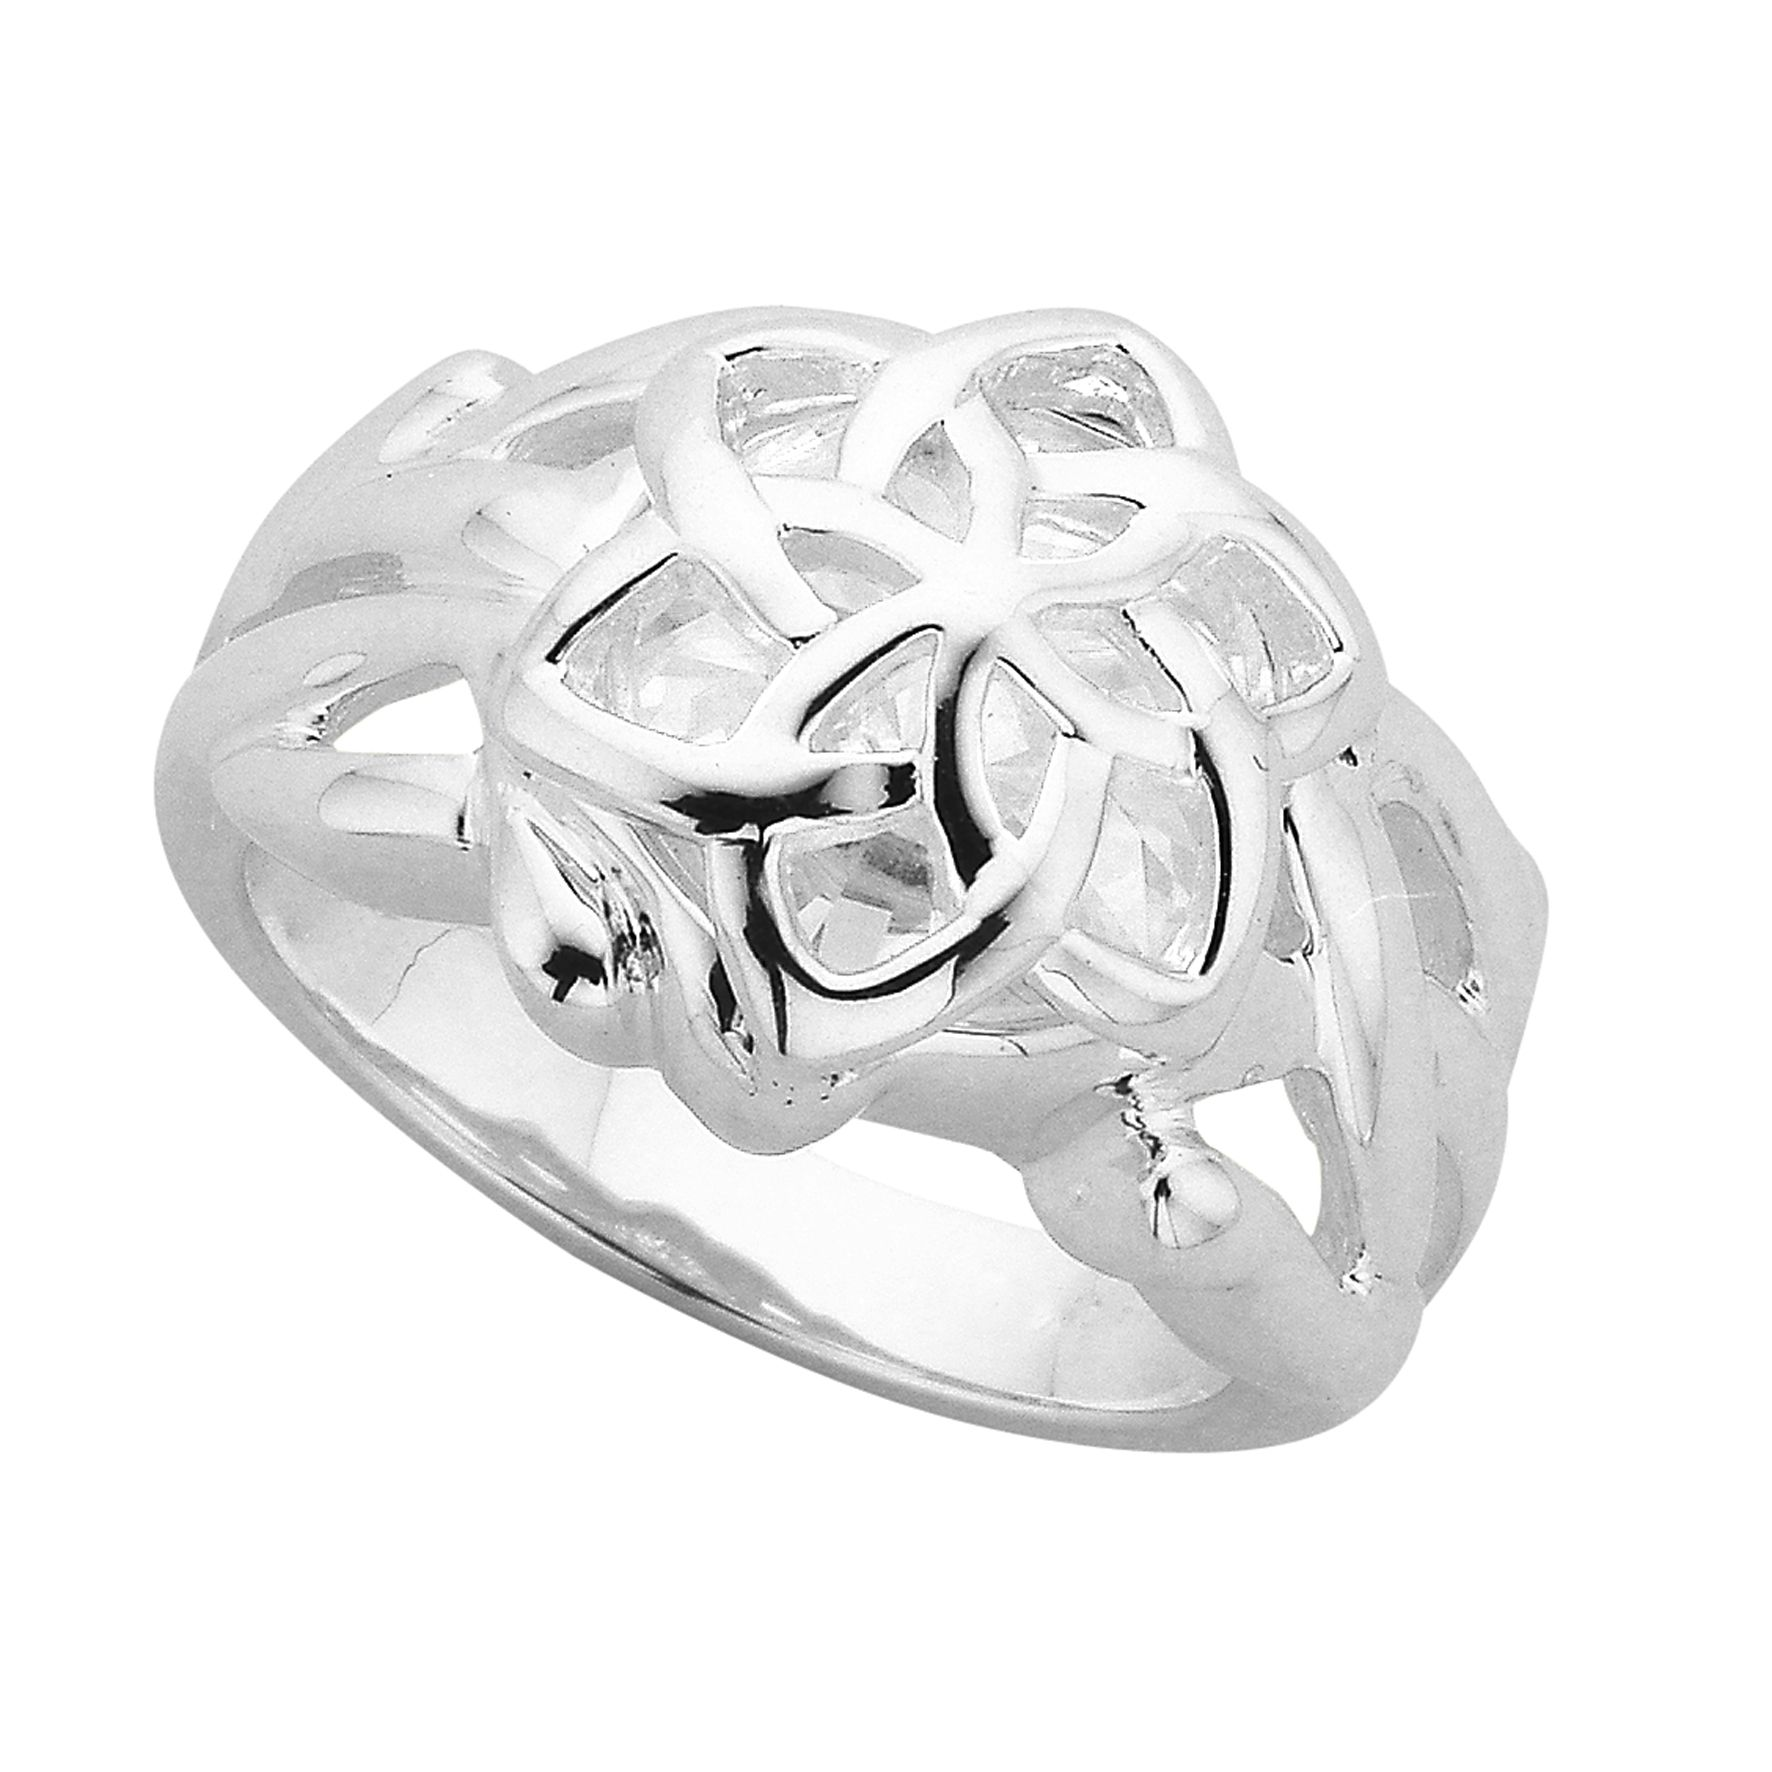 Galadriel's Nenya Flower Ring in SILVER with CZ at Goldfields Jewellers in Queenstown New Zealand